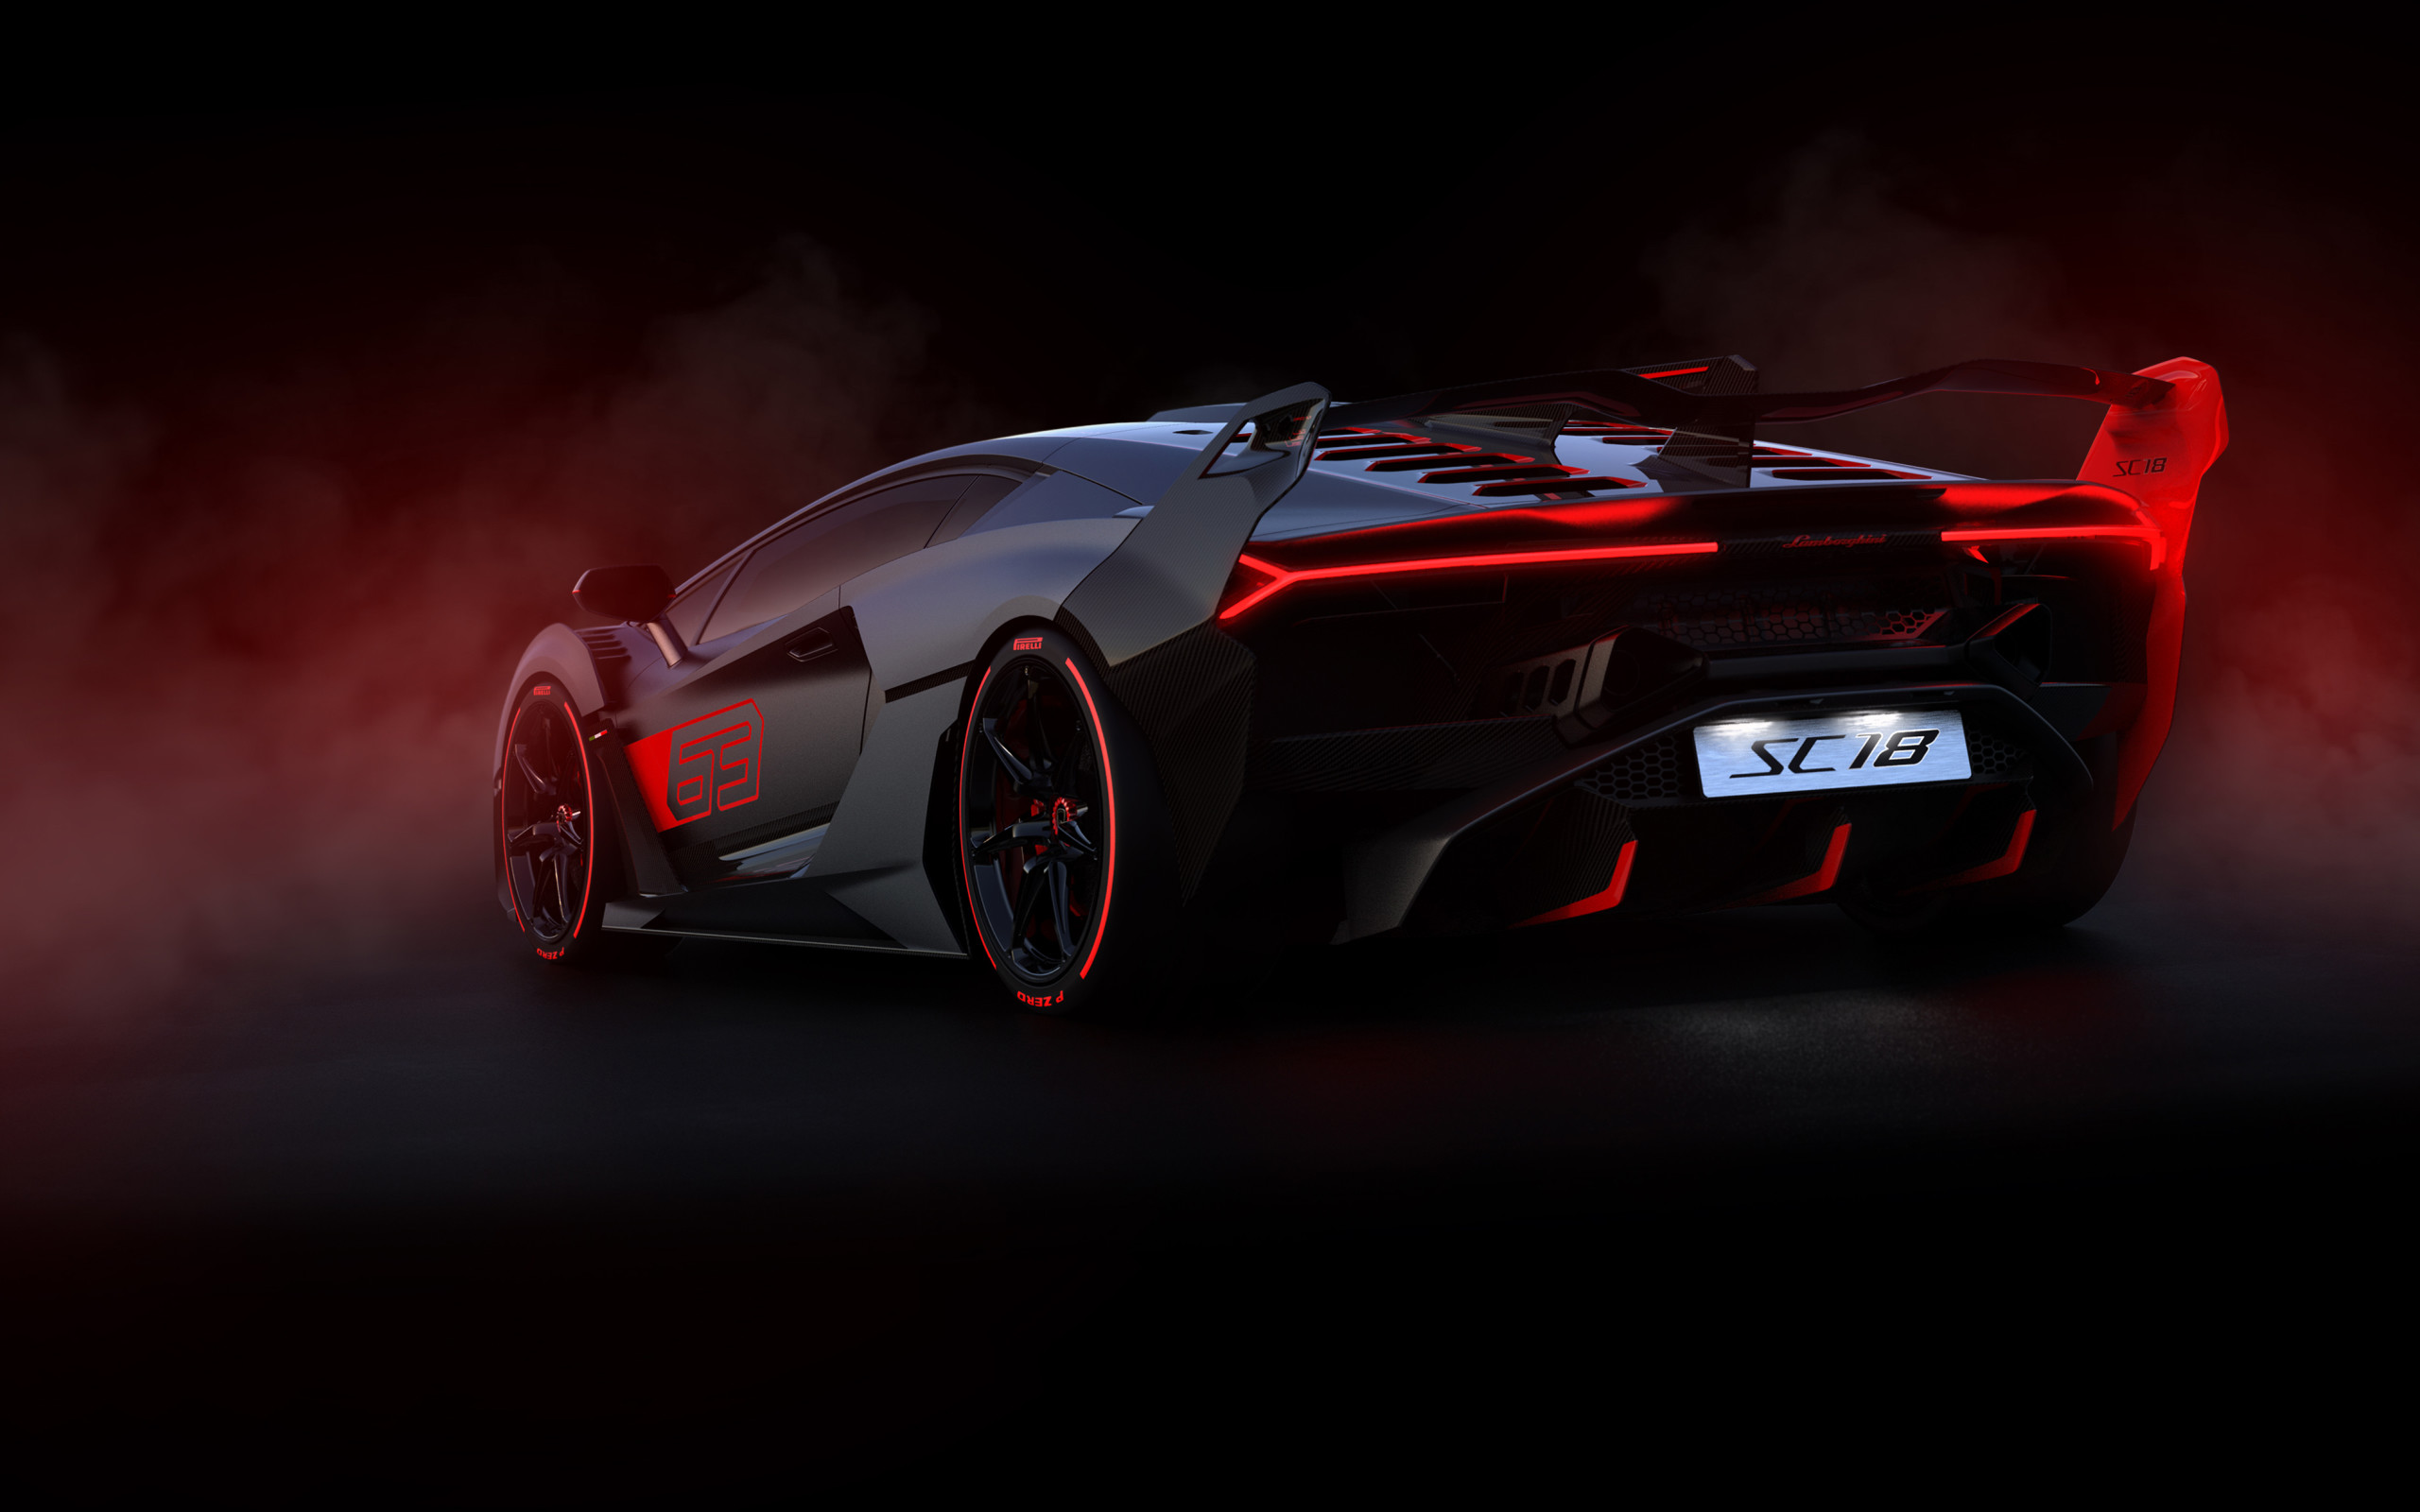 2560x1600 HD Wallpaper Vehicles, Car, Red, Black, Line, Lamborghini SC18